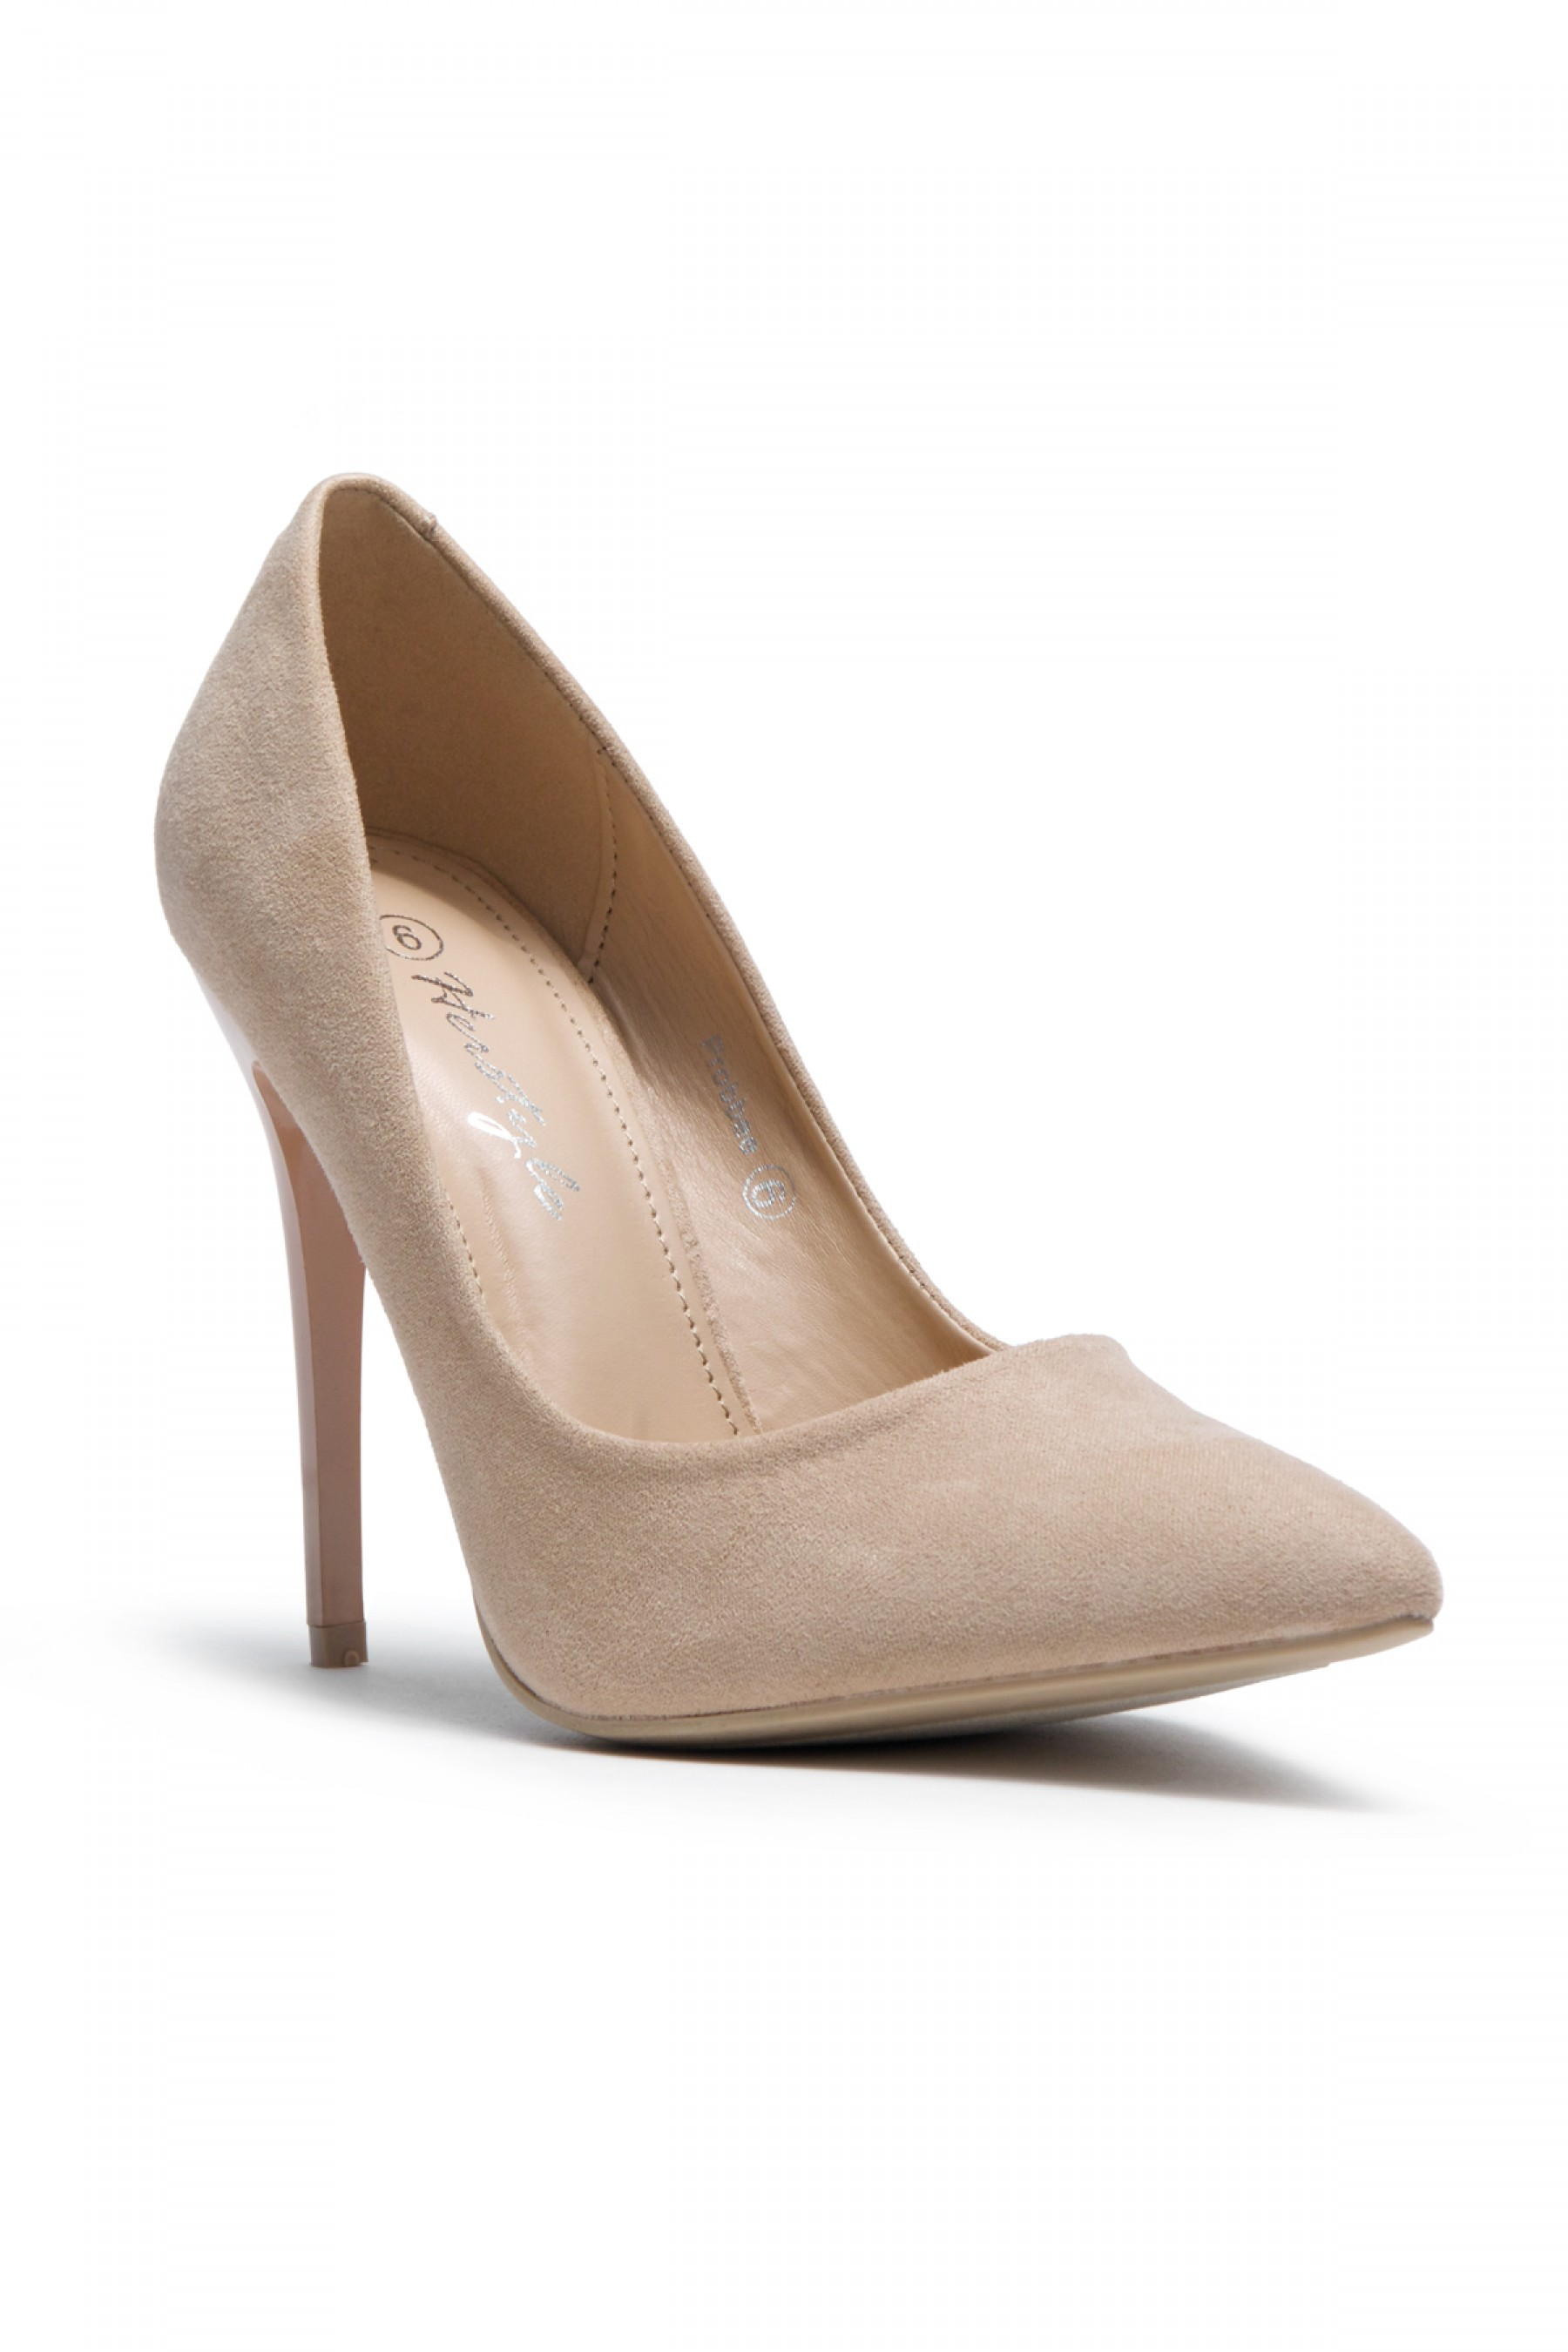 HerStyle Women's Manmade Probbee 4.5-inch Classic Sueded Pump (Nude)